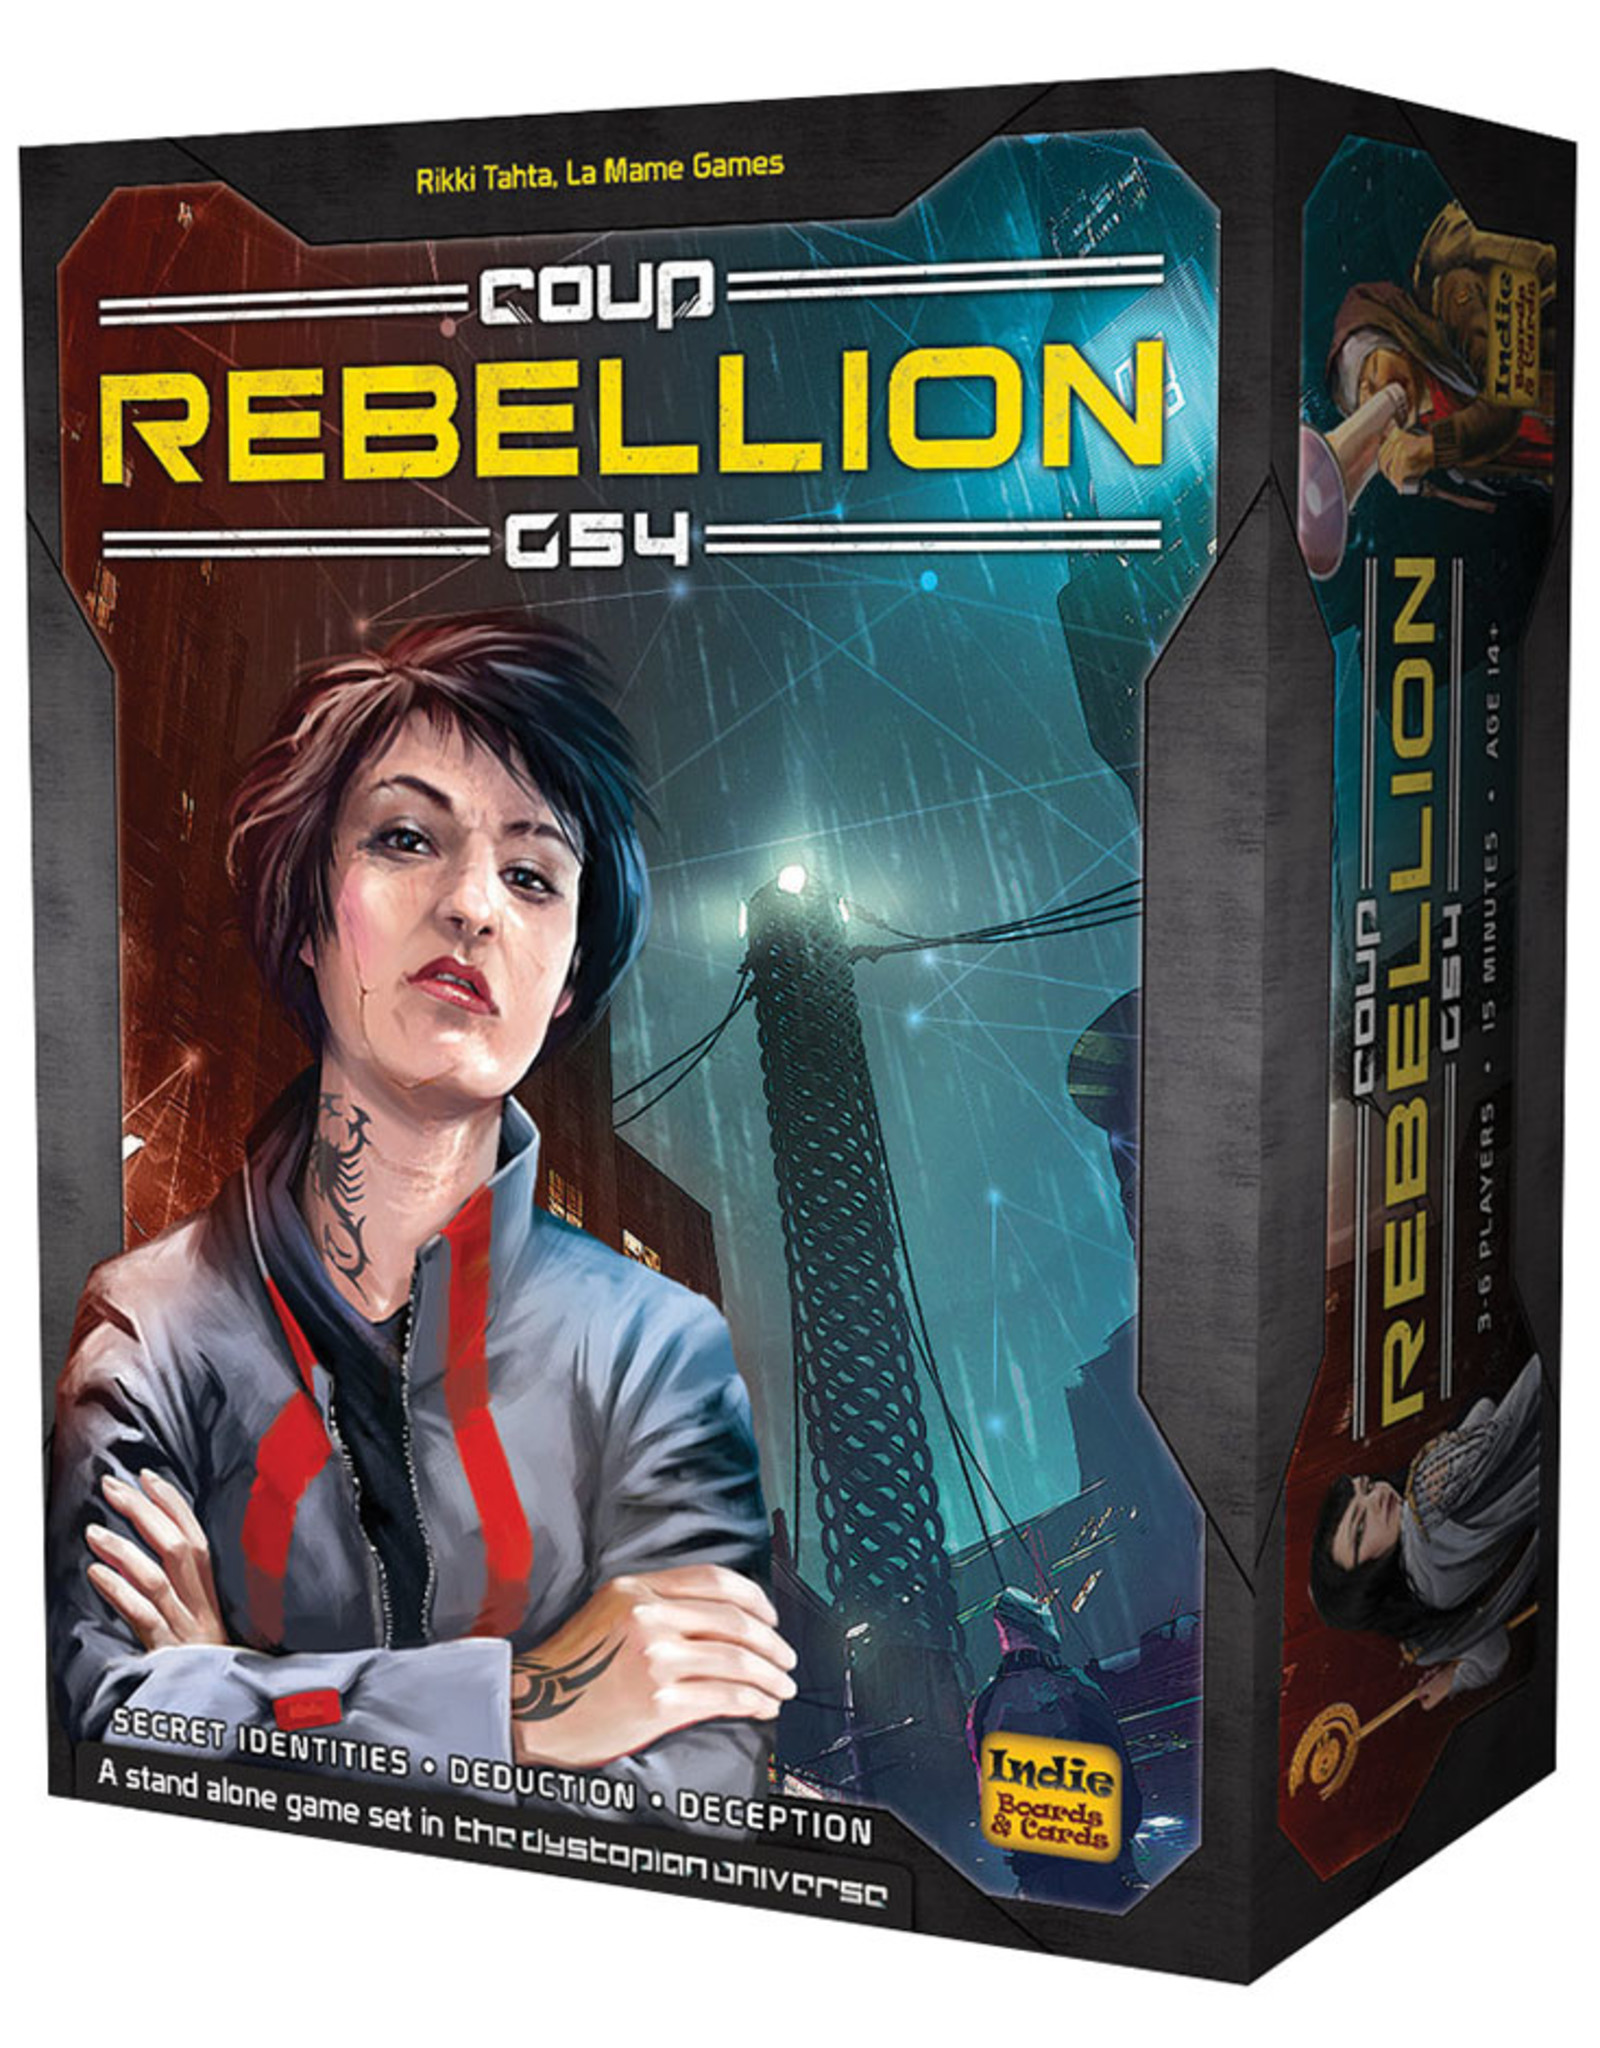 Indie Boards and Cards Coup: Rebellion G54